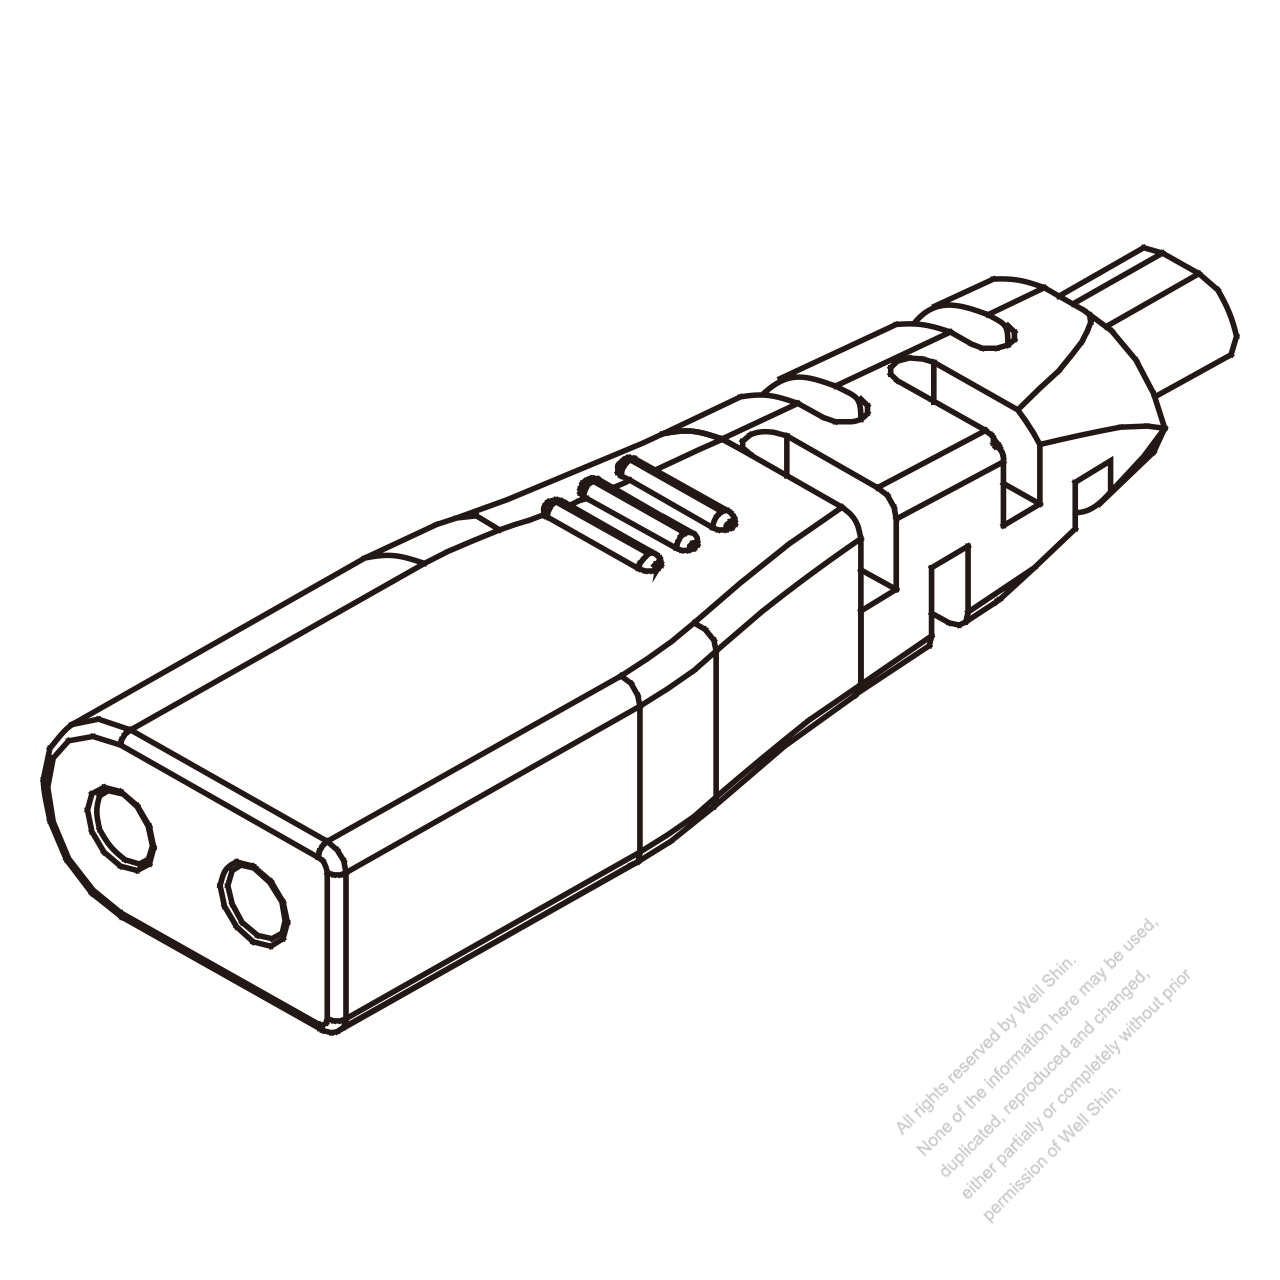 iec 320 c1 connectors 2-pin 10a 125v